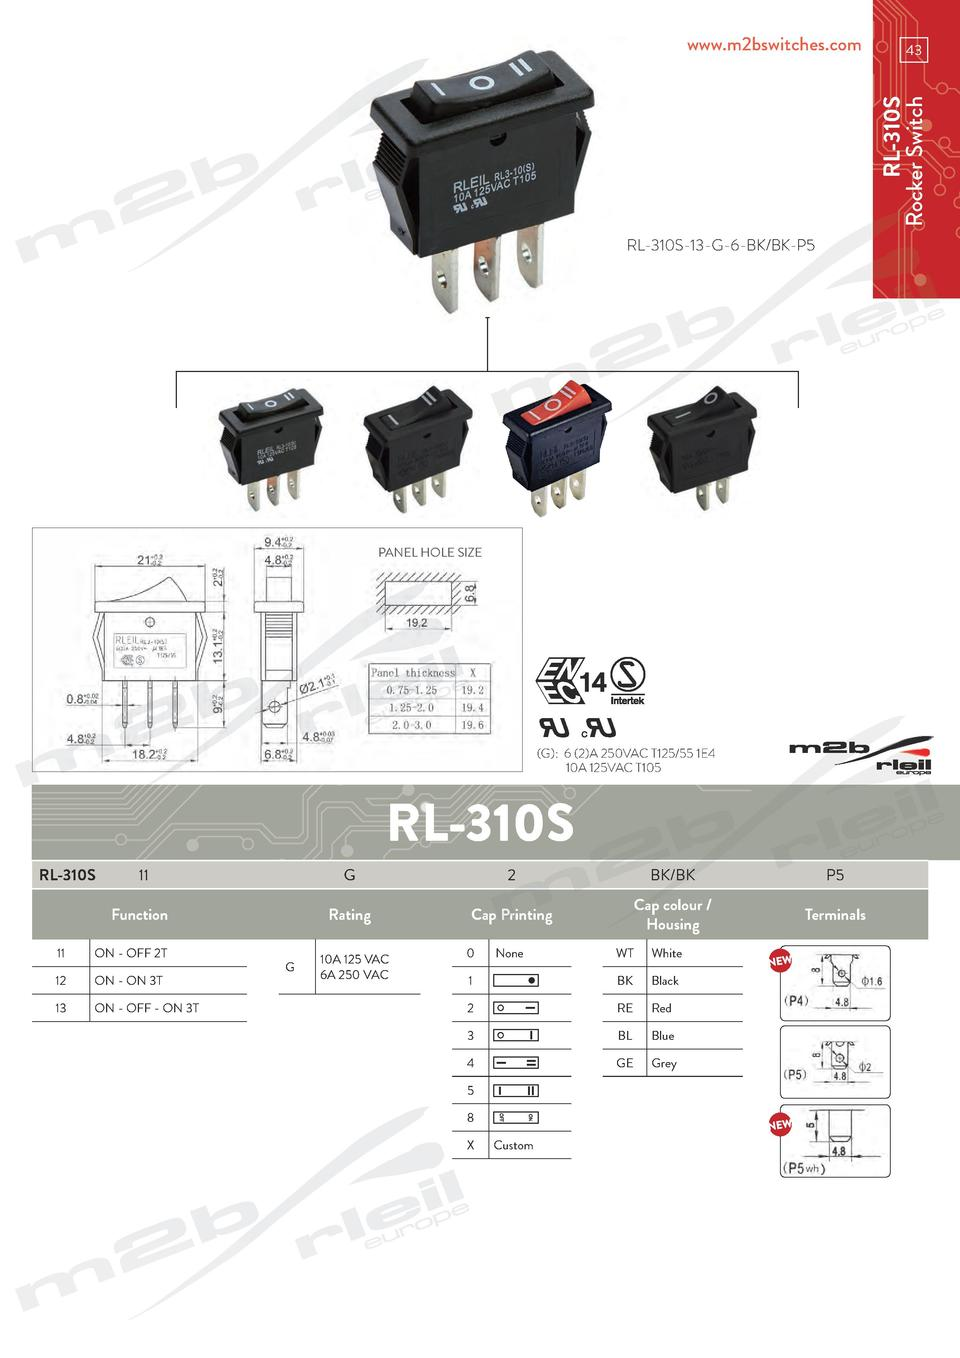 43  RL-310S Rocker Switch  www.m2bswitches.com  RL-310S-13-G-6-BK BK-P5  PANEL HOLE SIZE   G   6  2 A 250VAC T125 55 1E4  ...